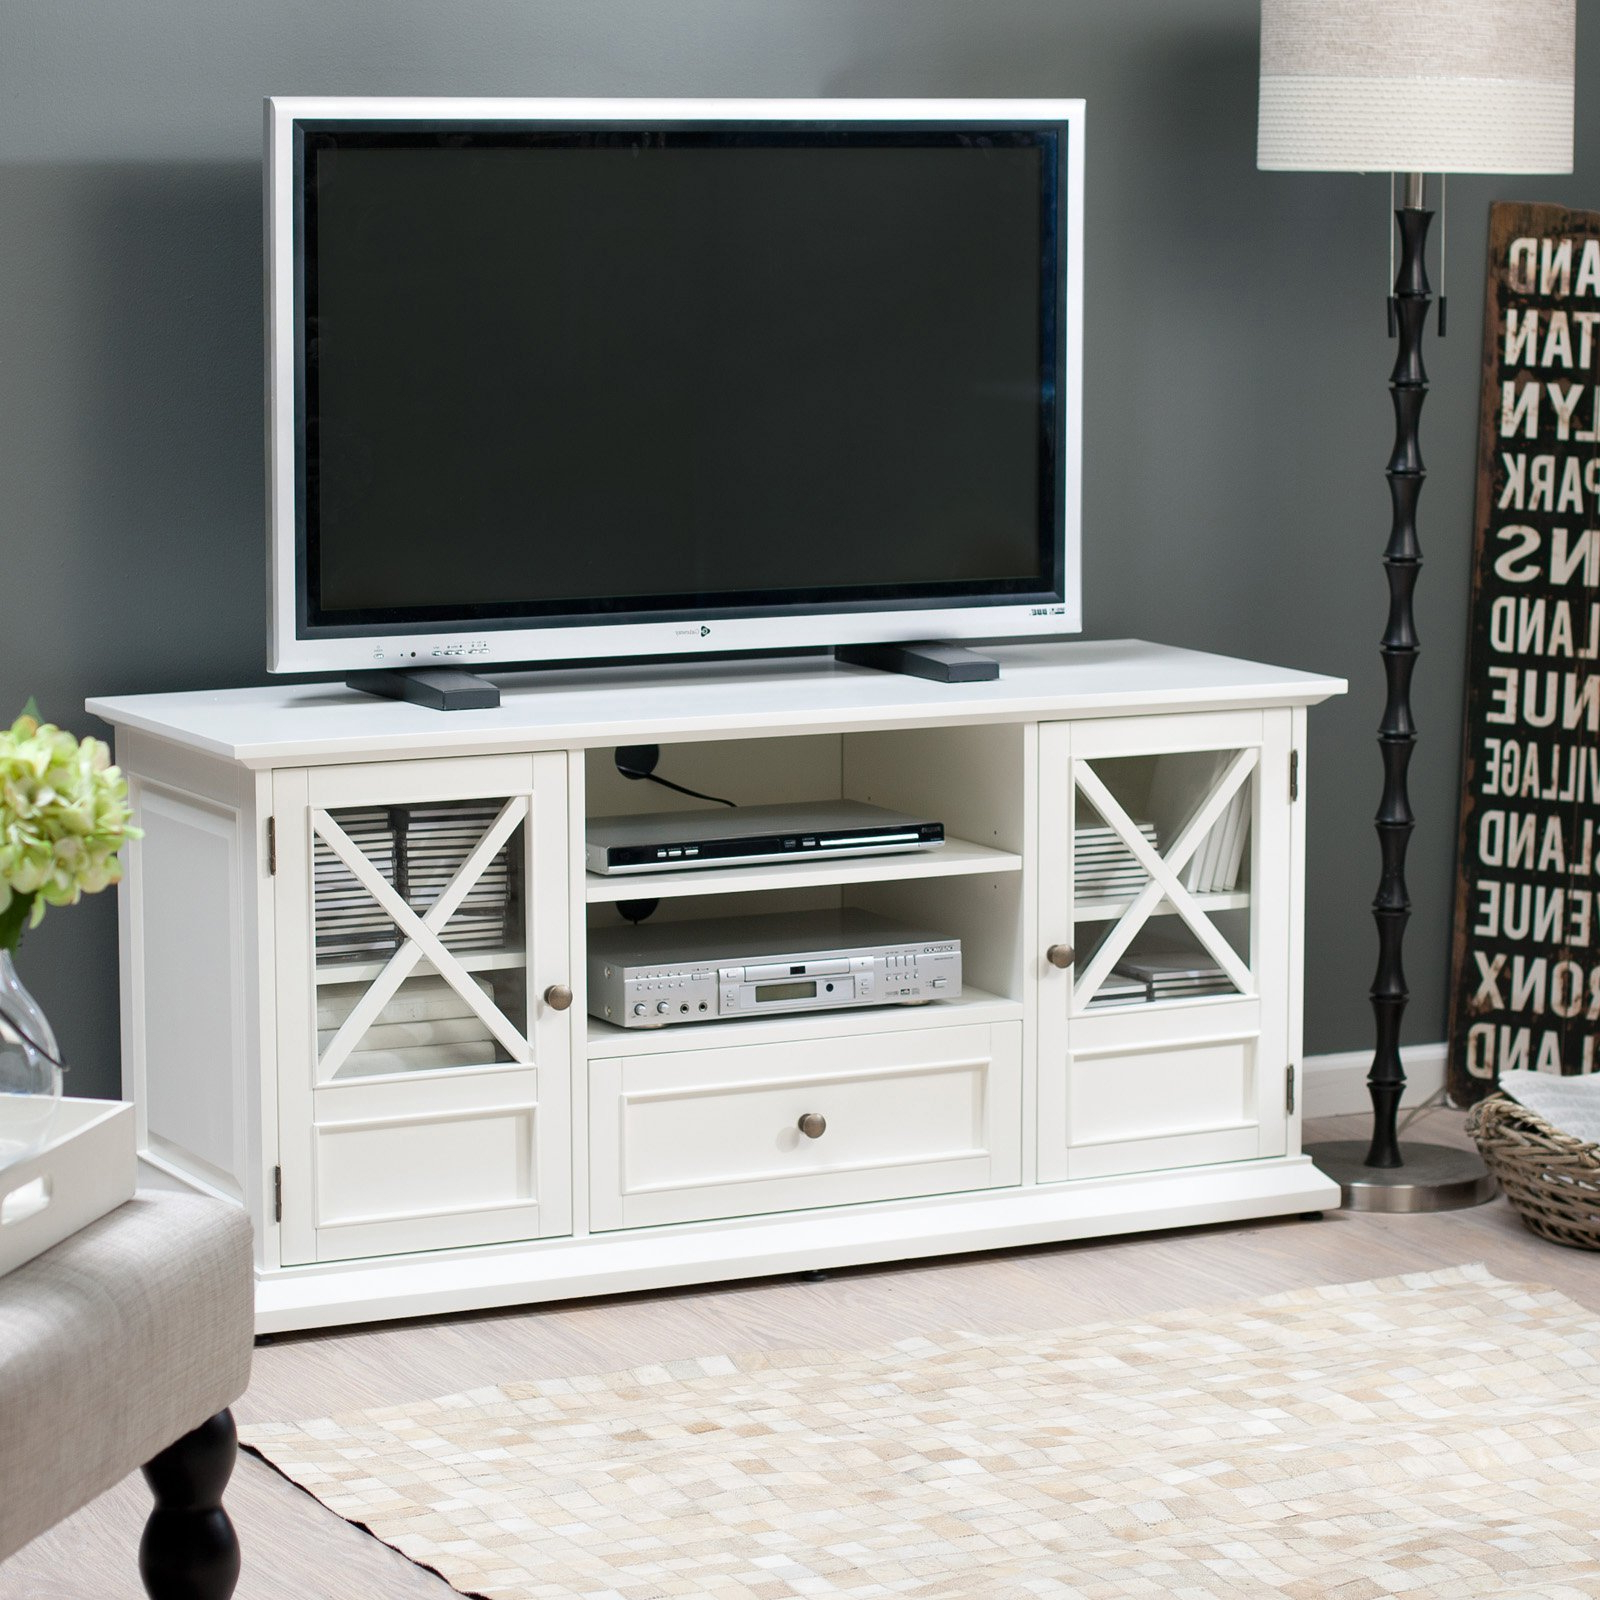 Tv Stands & Entertainment Centers | Hayneedle Throughout Murphy 72 Inch Tv Stands (View 19 of 20)